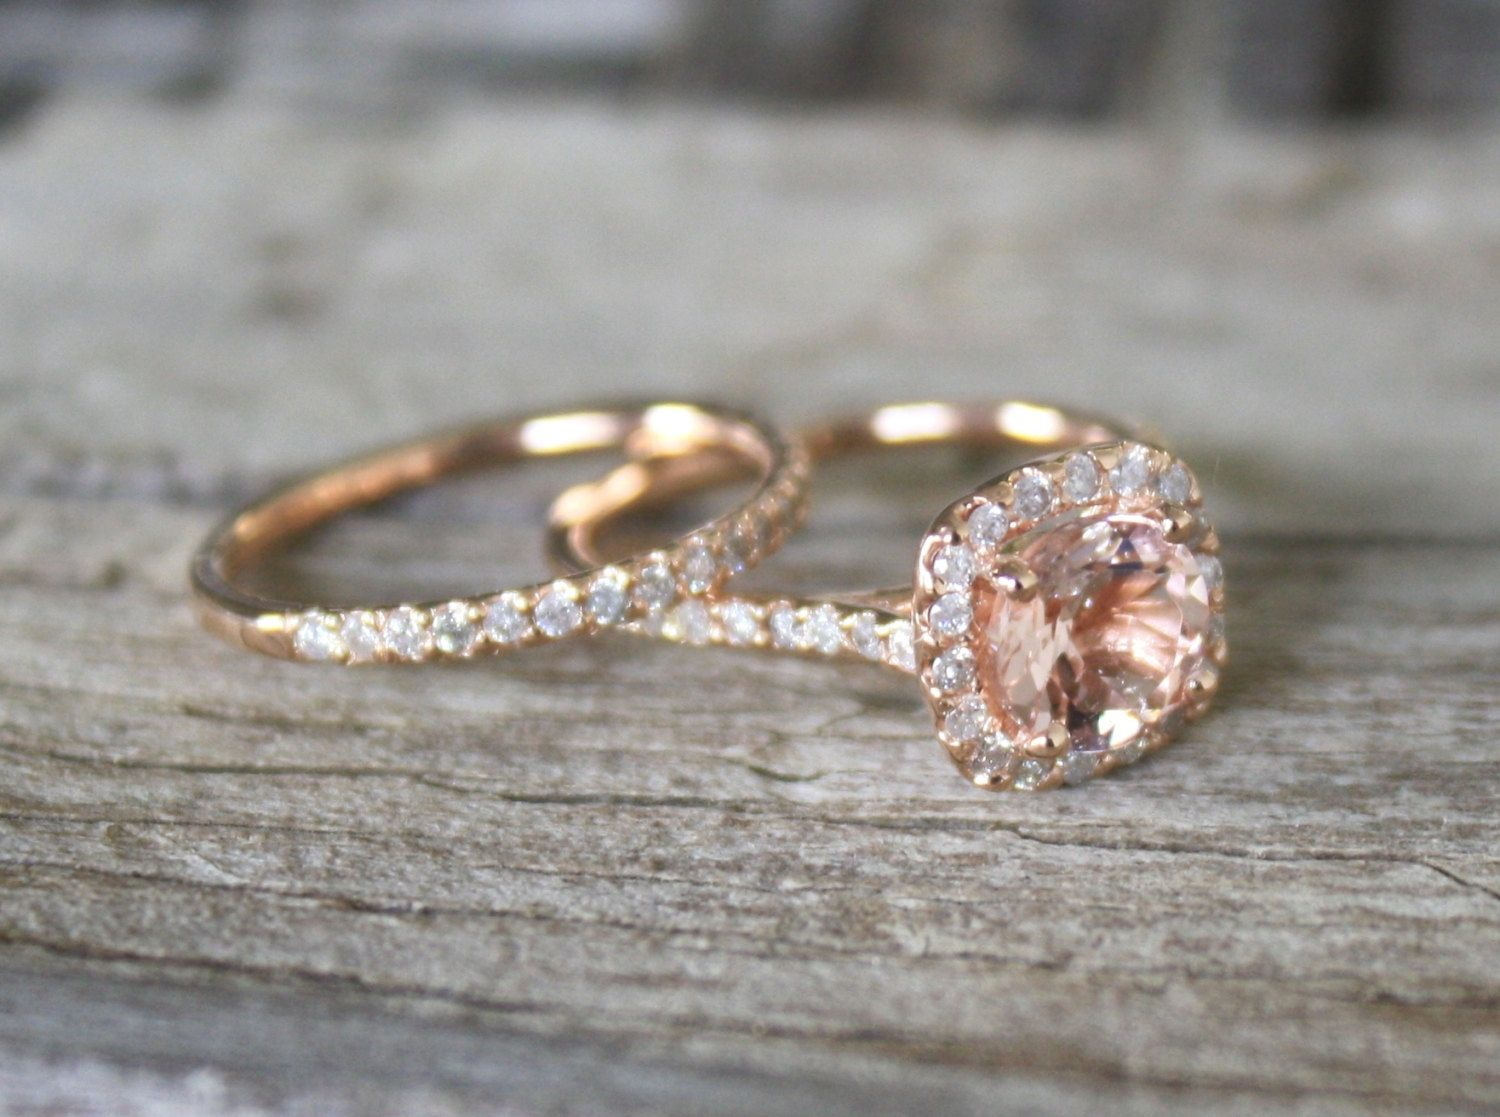 rose gold wedding rings Morganite Engagement Ring Set in 14K Rose Gold Halo Diamond Setting 1 50 via Etsy